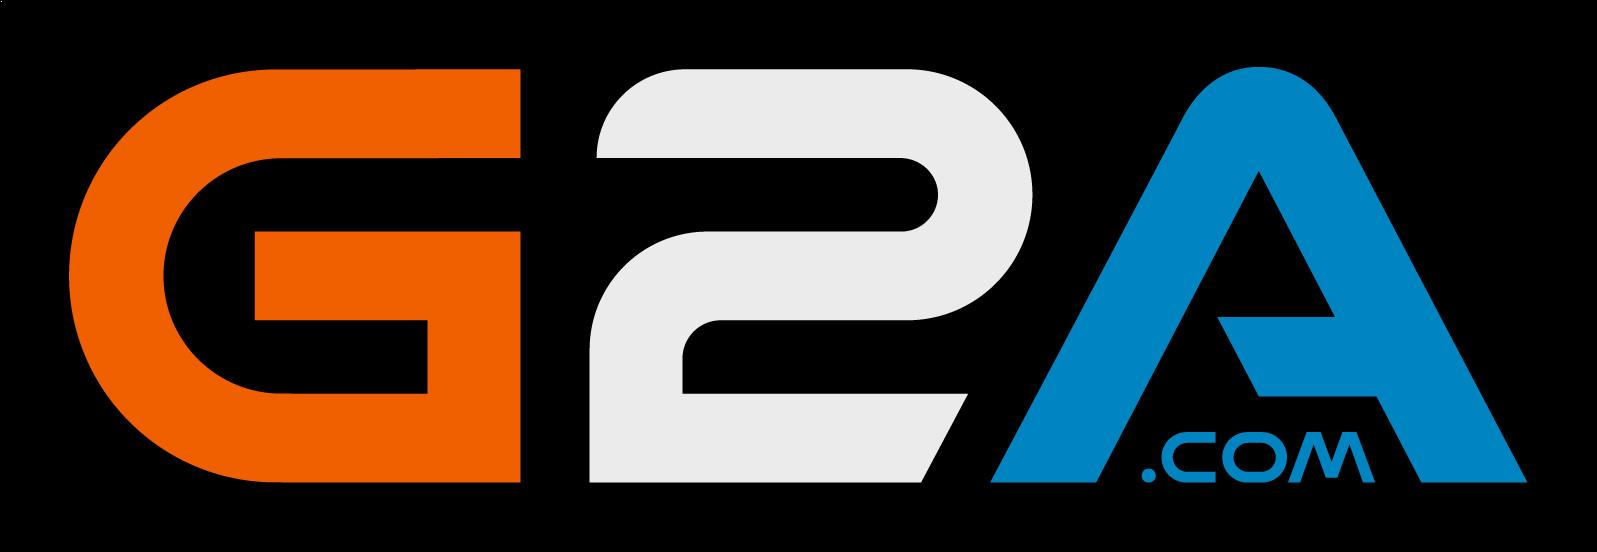 g2a.com marketplace changes 2017